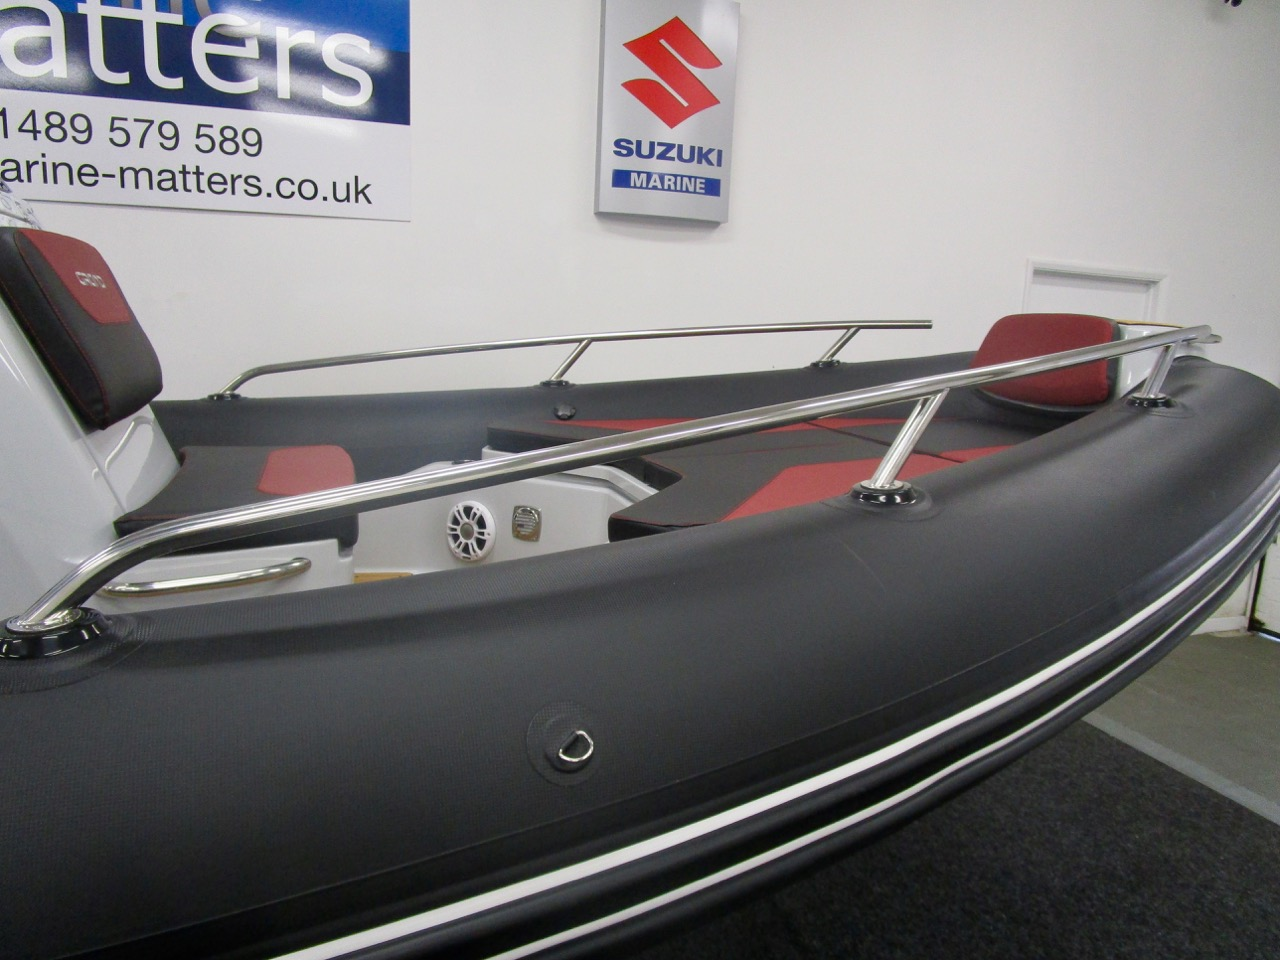 GRAND G750 RIB unique bow tube handrails